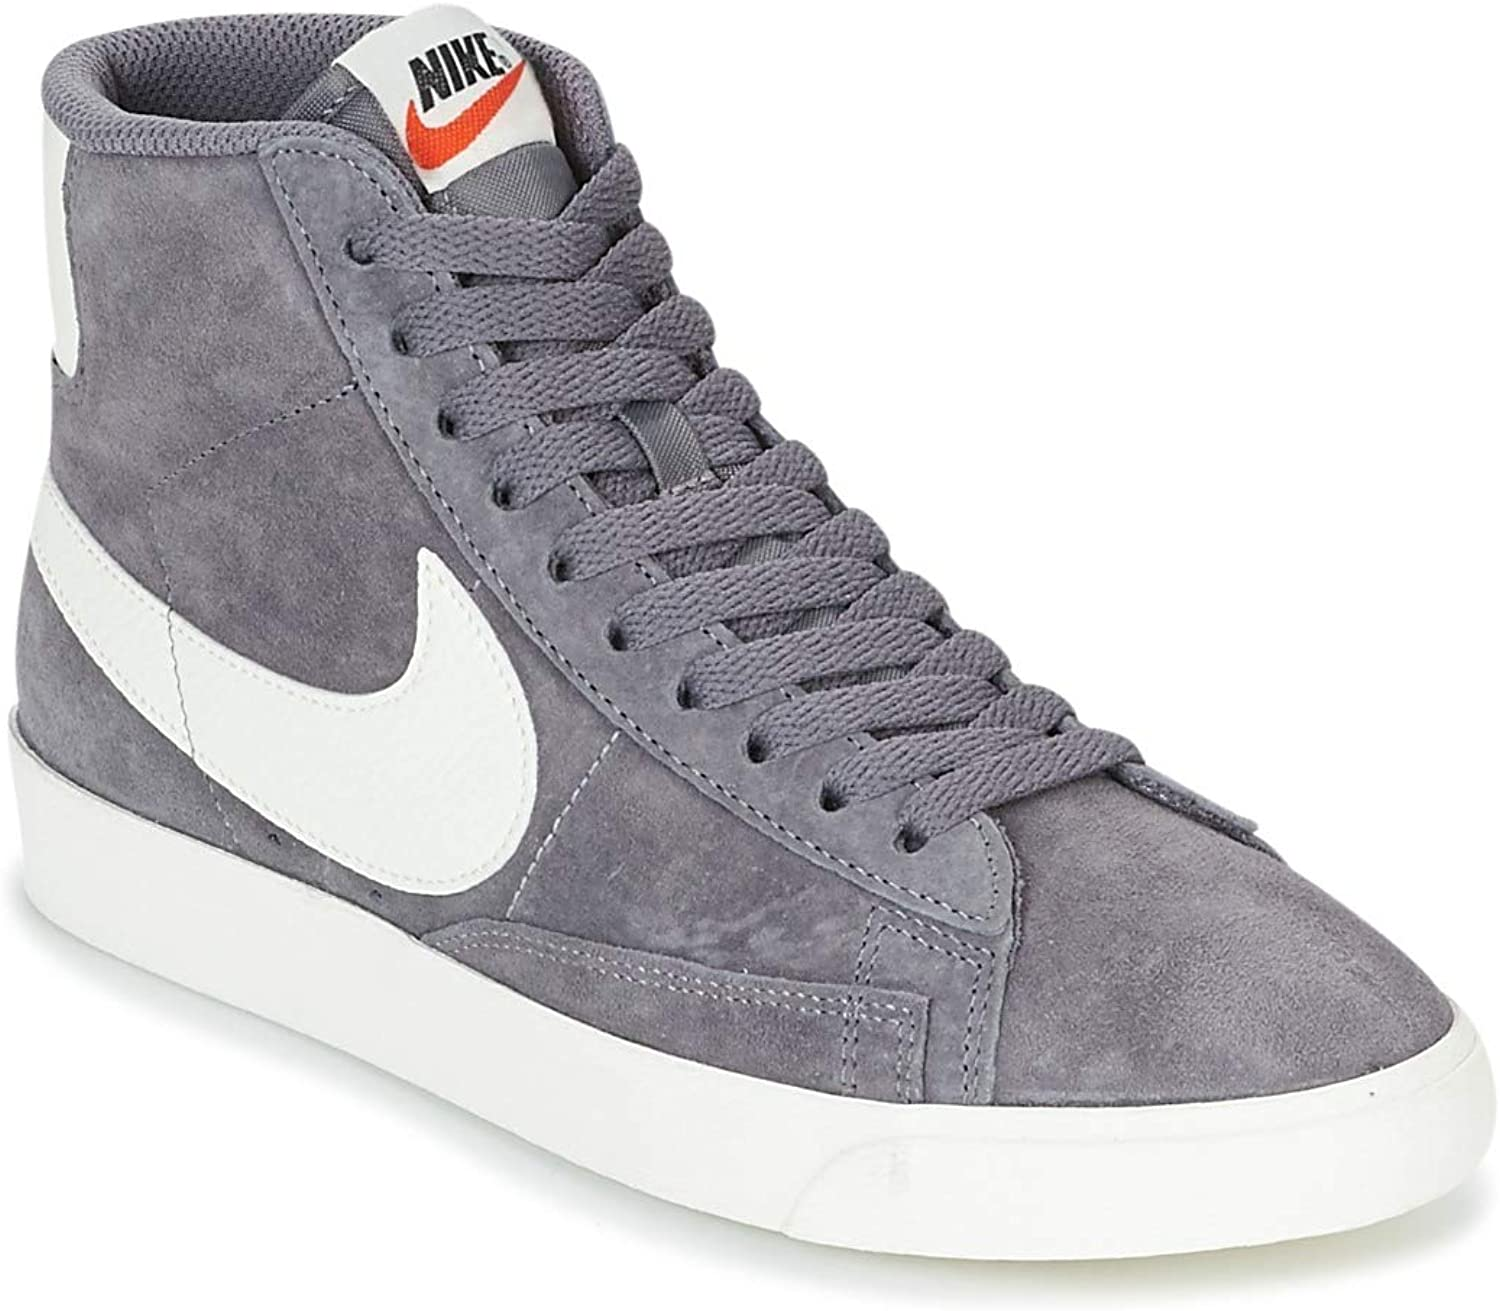 Nike Womens Blazer Mid Vintage Suede High Top Fashion Sneakers